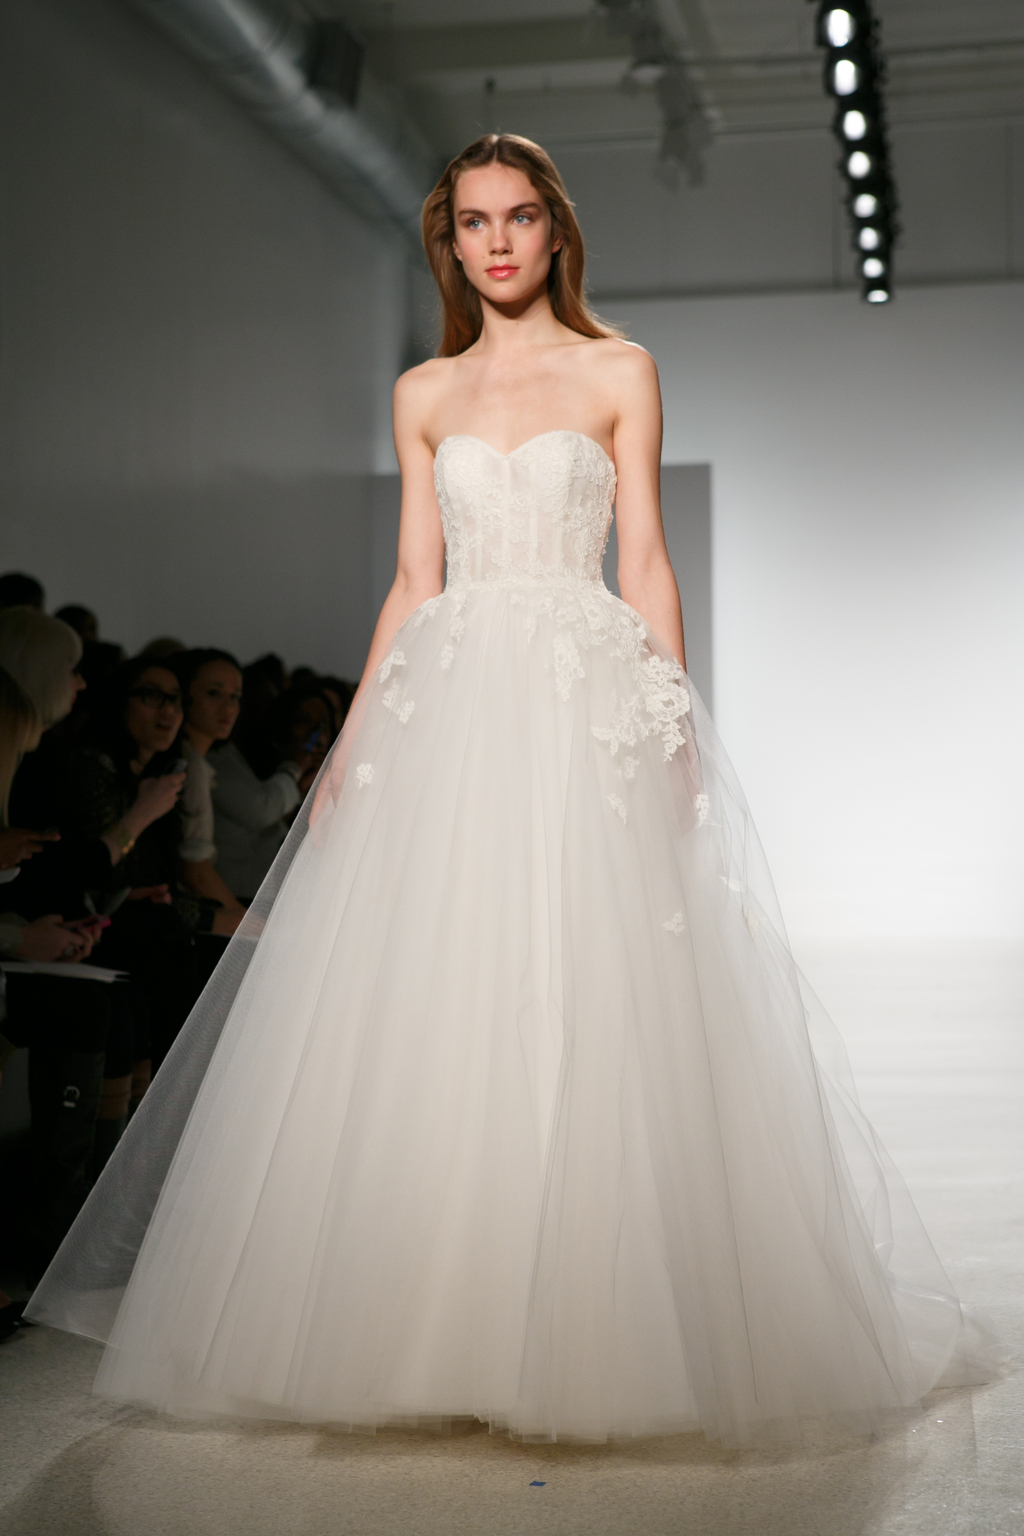 Christos-spring-2014-wedding-dress.full